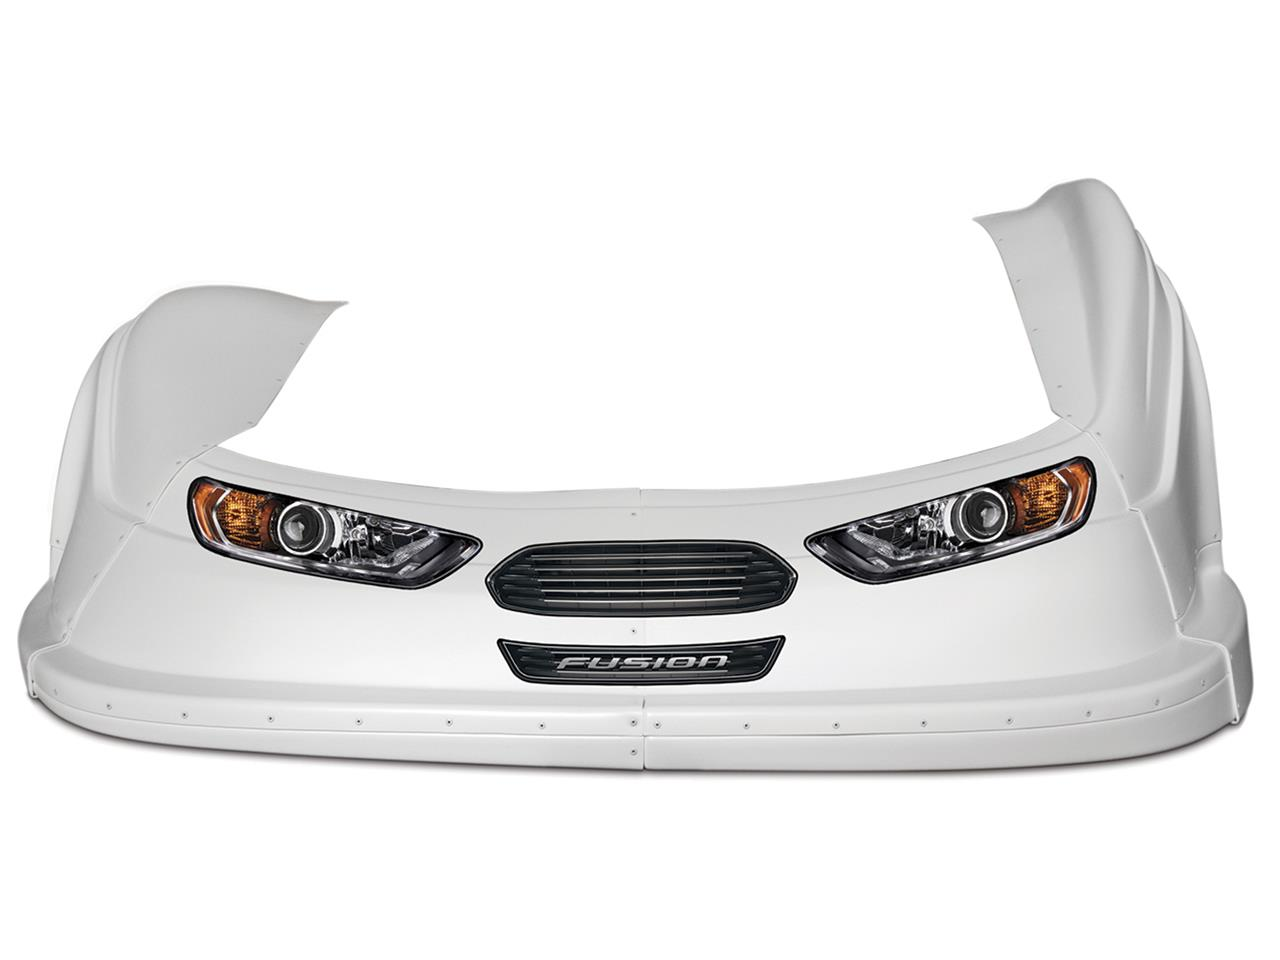 MD3 Evolution 2 Nose Kit - (White - Fusion)